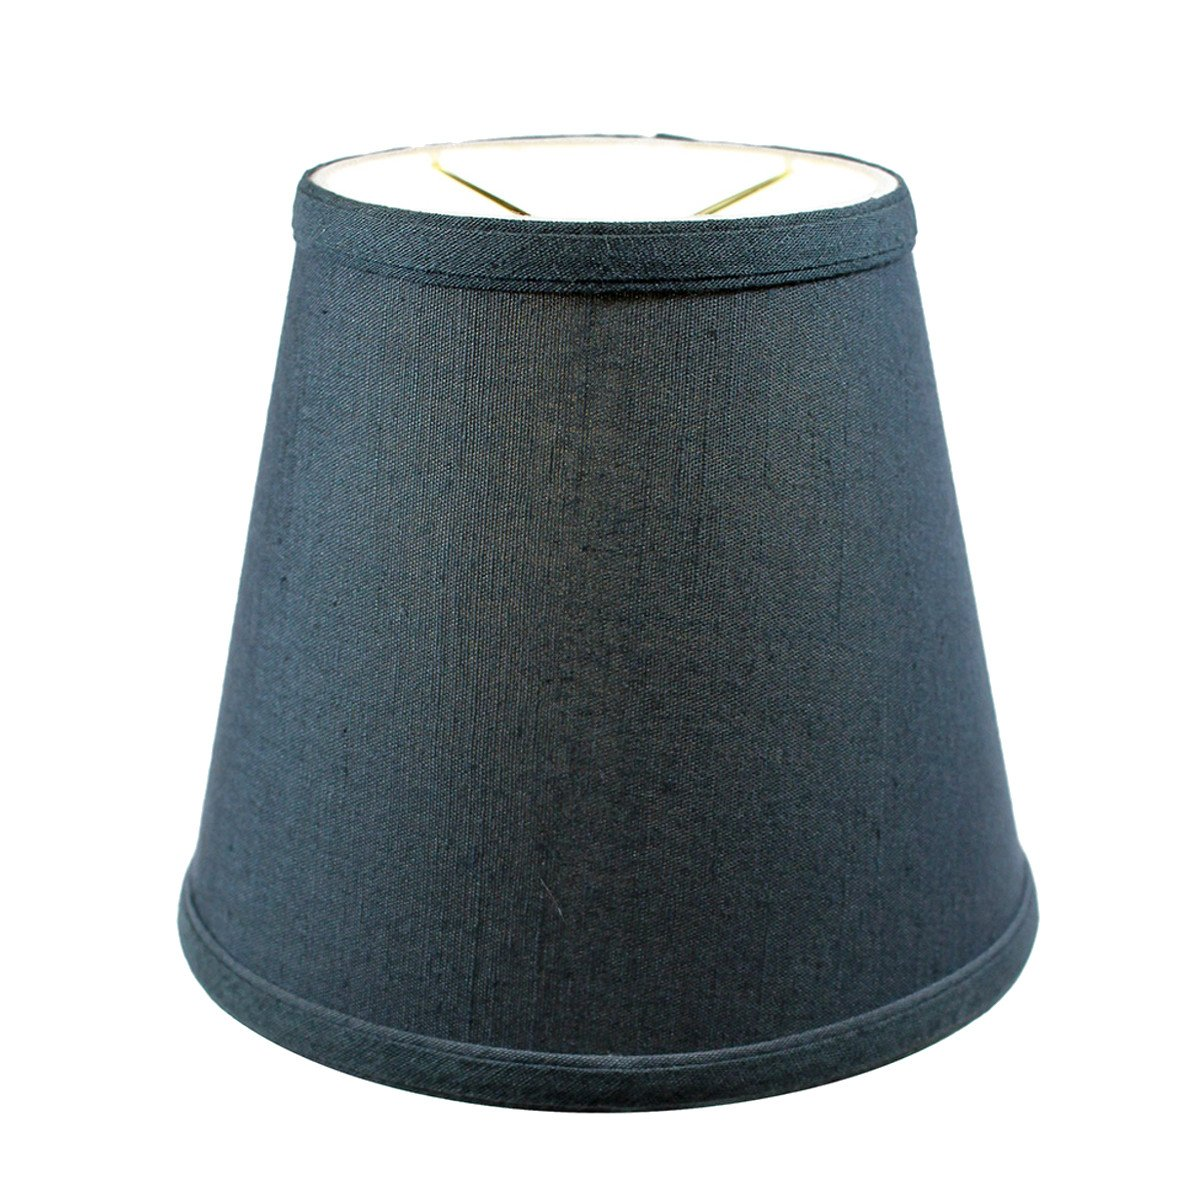 5x8x7 Textured Slate Blue Hard Back Lampshade Clip On Fitter by Home Concept - Perfect for Small Table Lamps, Desk Lamps, and Accent Lights -Small, Blue by HomeConcept (Image #4)